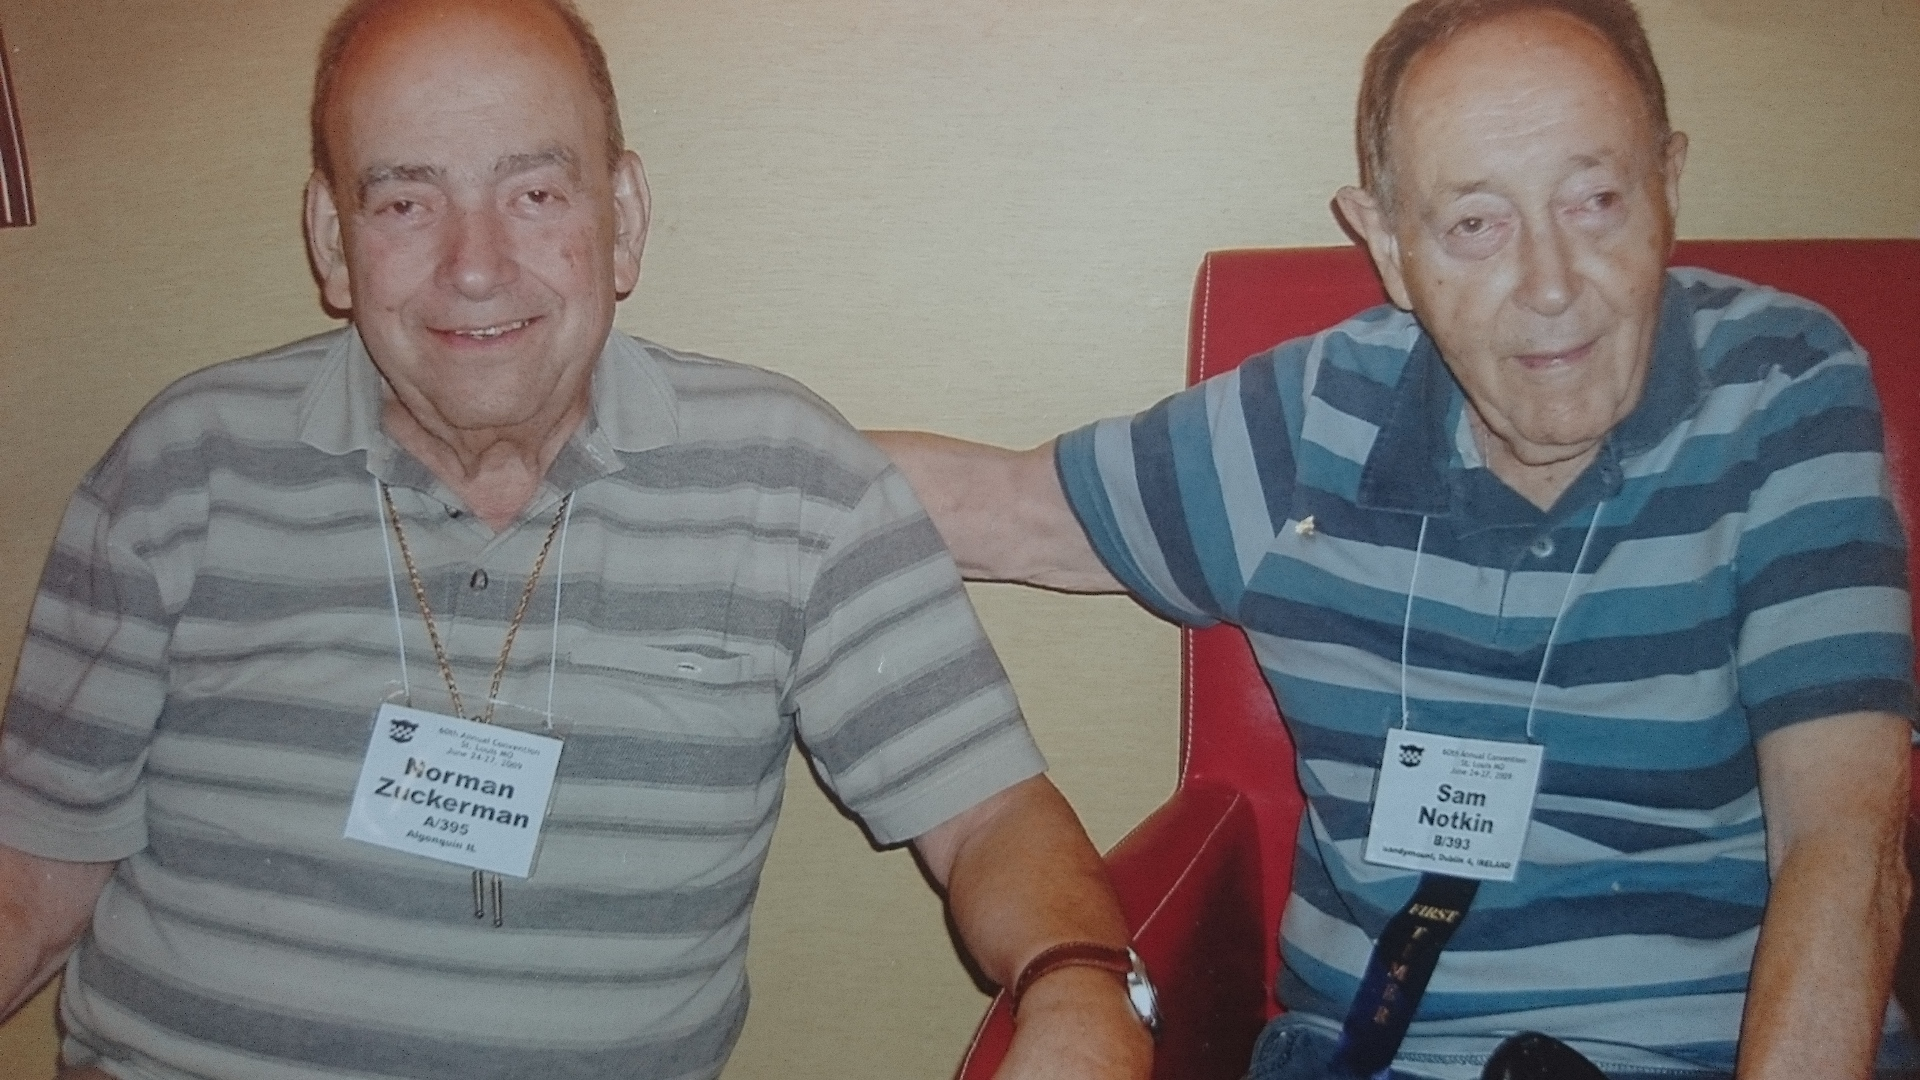 Sam Notkin & Norman Zuckerman at 99th Division reunion